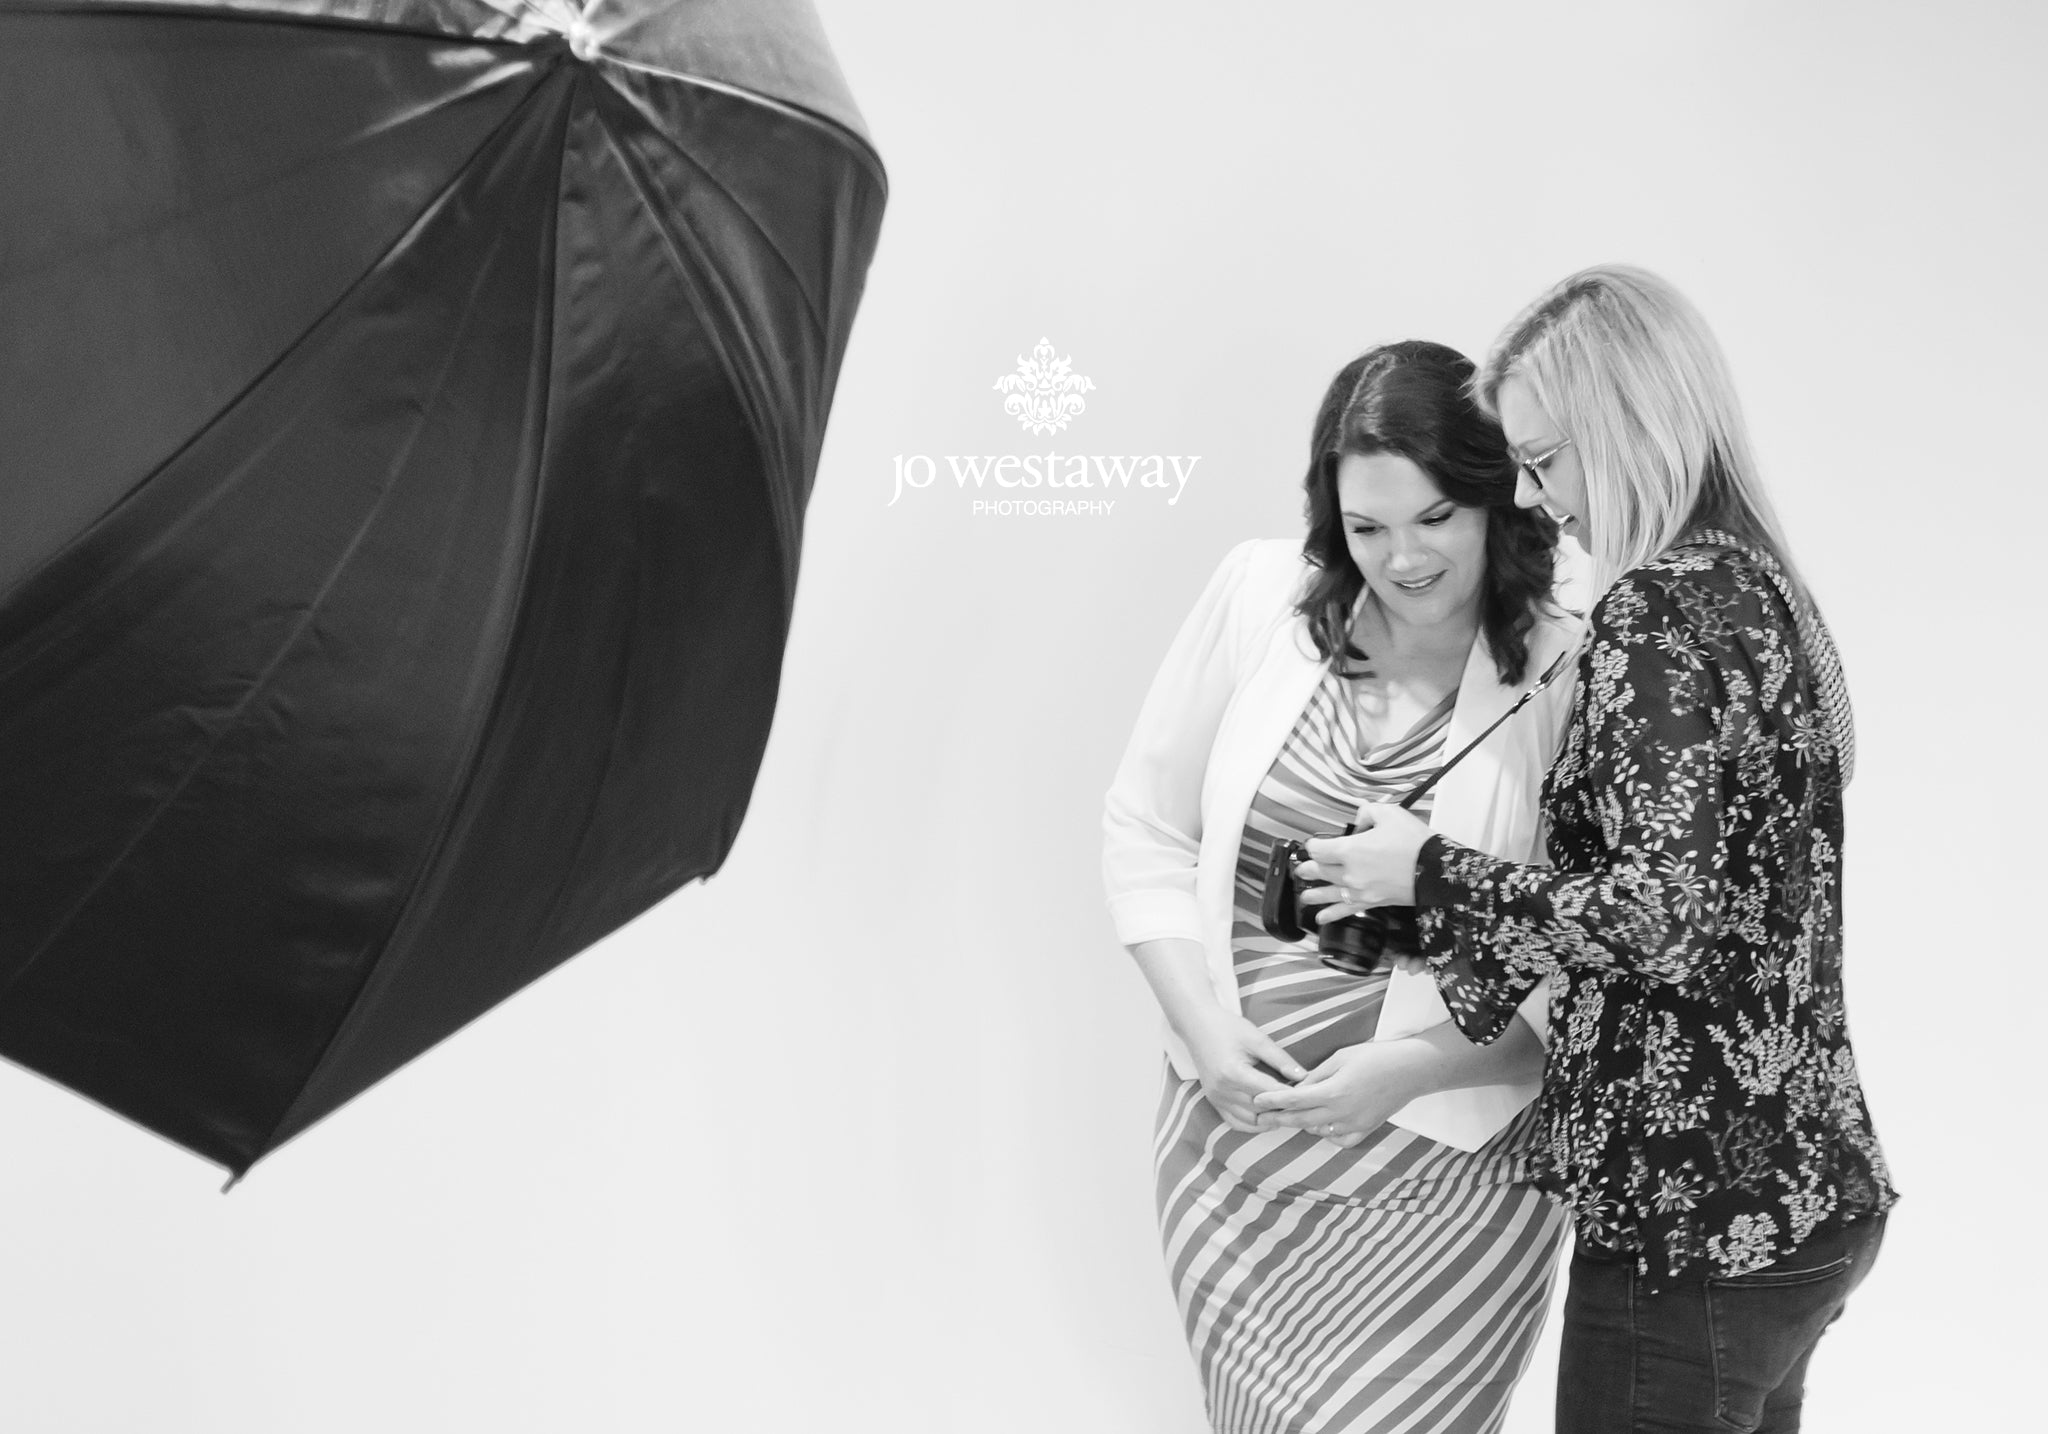 Show a branding client how amazing she looks - personal brand and headshot photography session